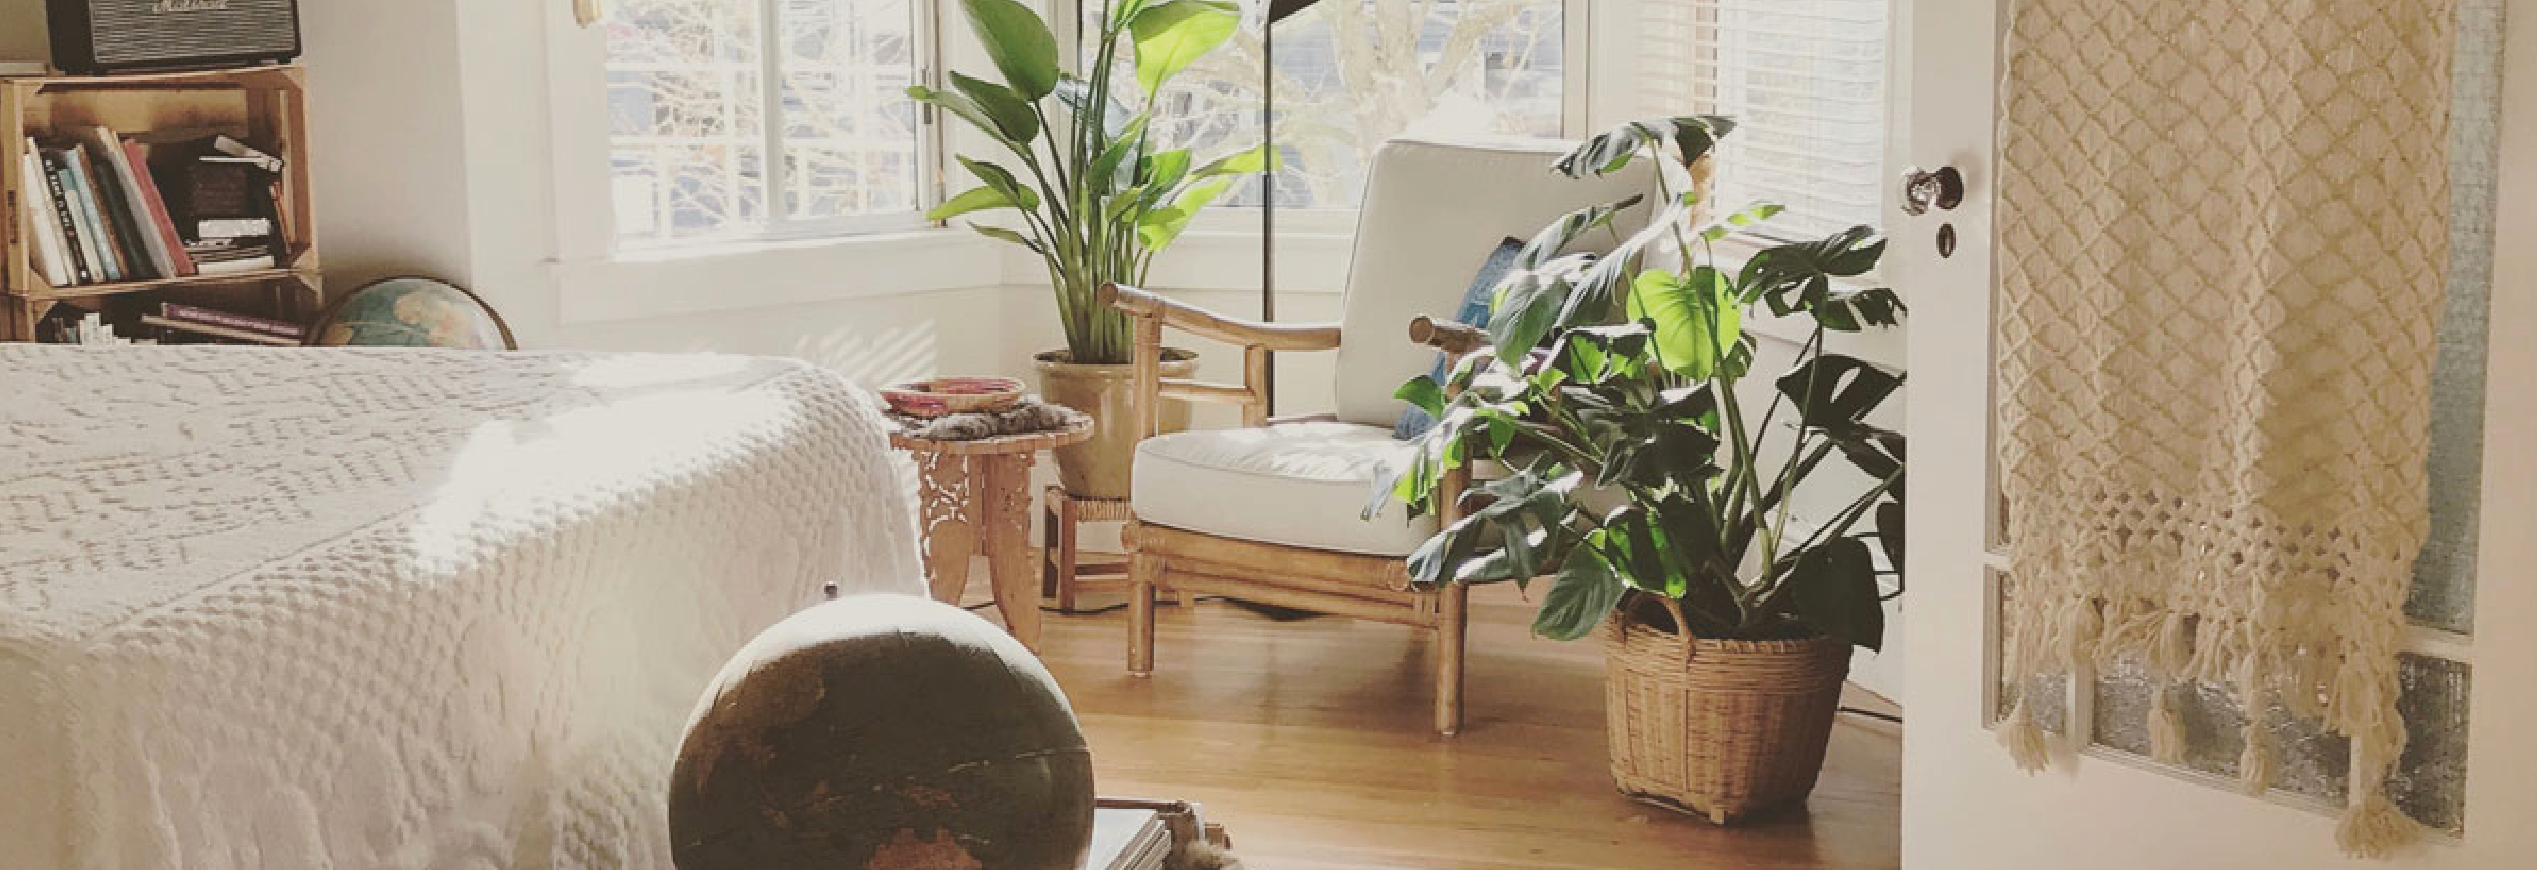 Plants in your bedroom - good or bad?